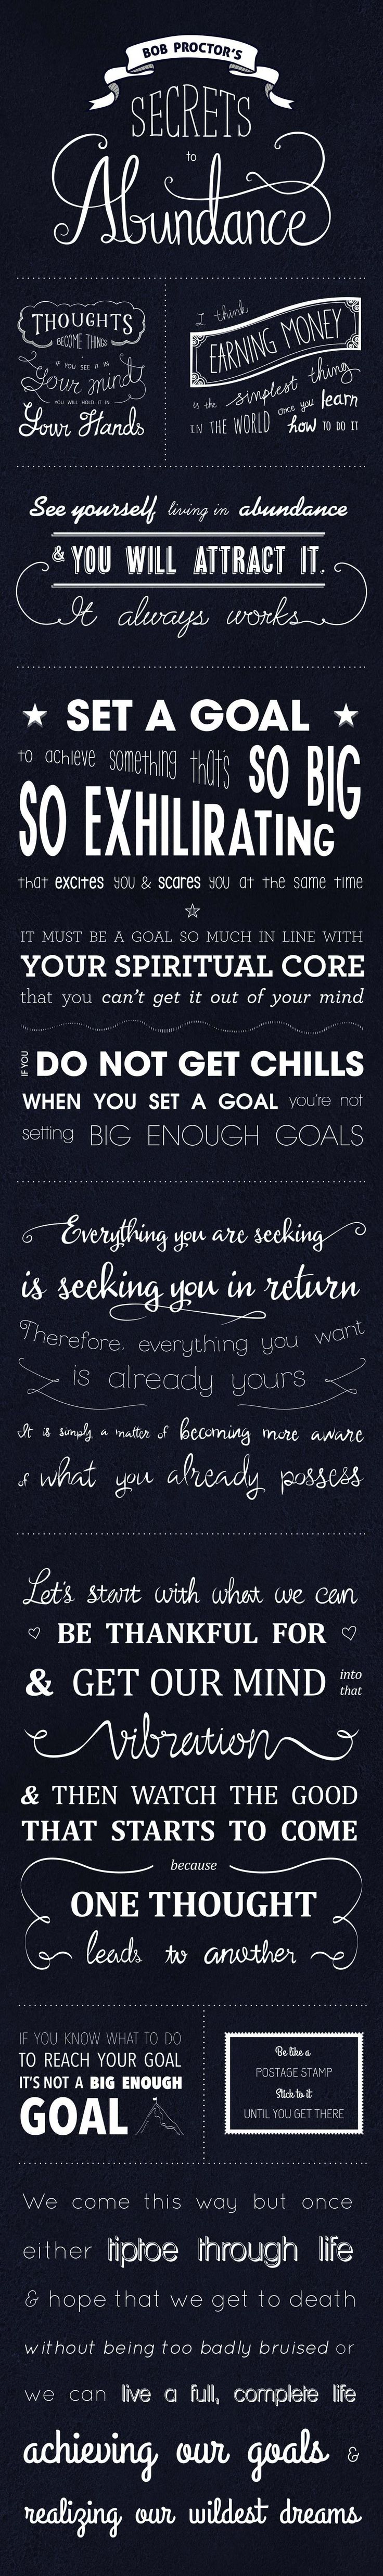 ••Bob Proctor•• Law Of Attraction 2014 - best quotes on Secrets to Abundance (poster by MindValleyAcademy)